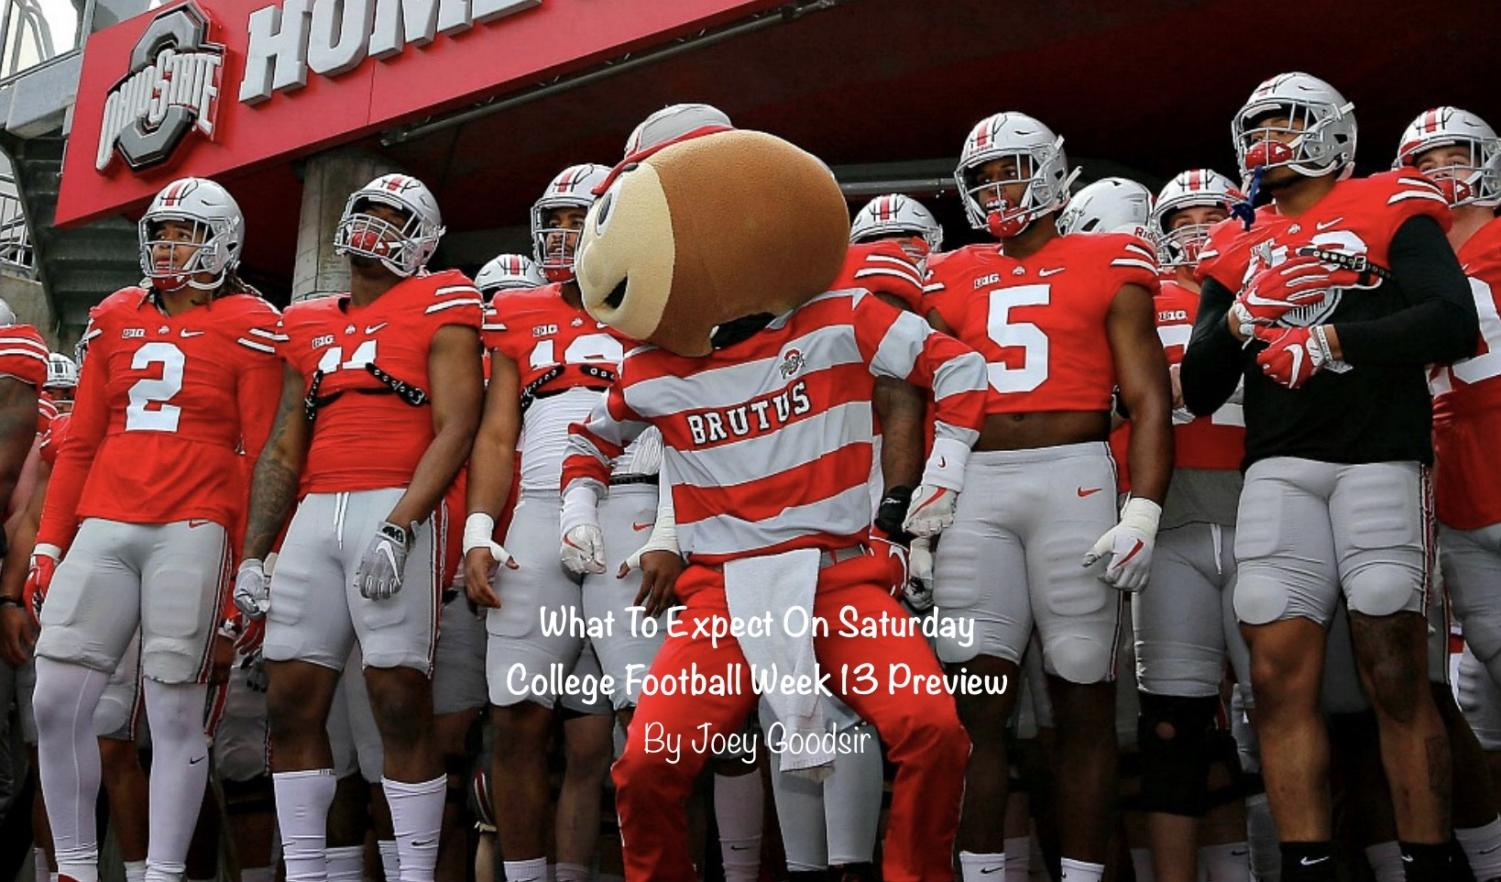 Ohio State is an undefeated #2, and the only thing preventing them from leading them all is a big time performance in a big time game. They get their opportunity this week.